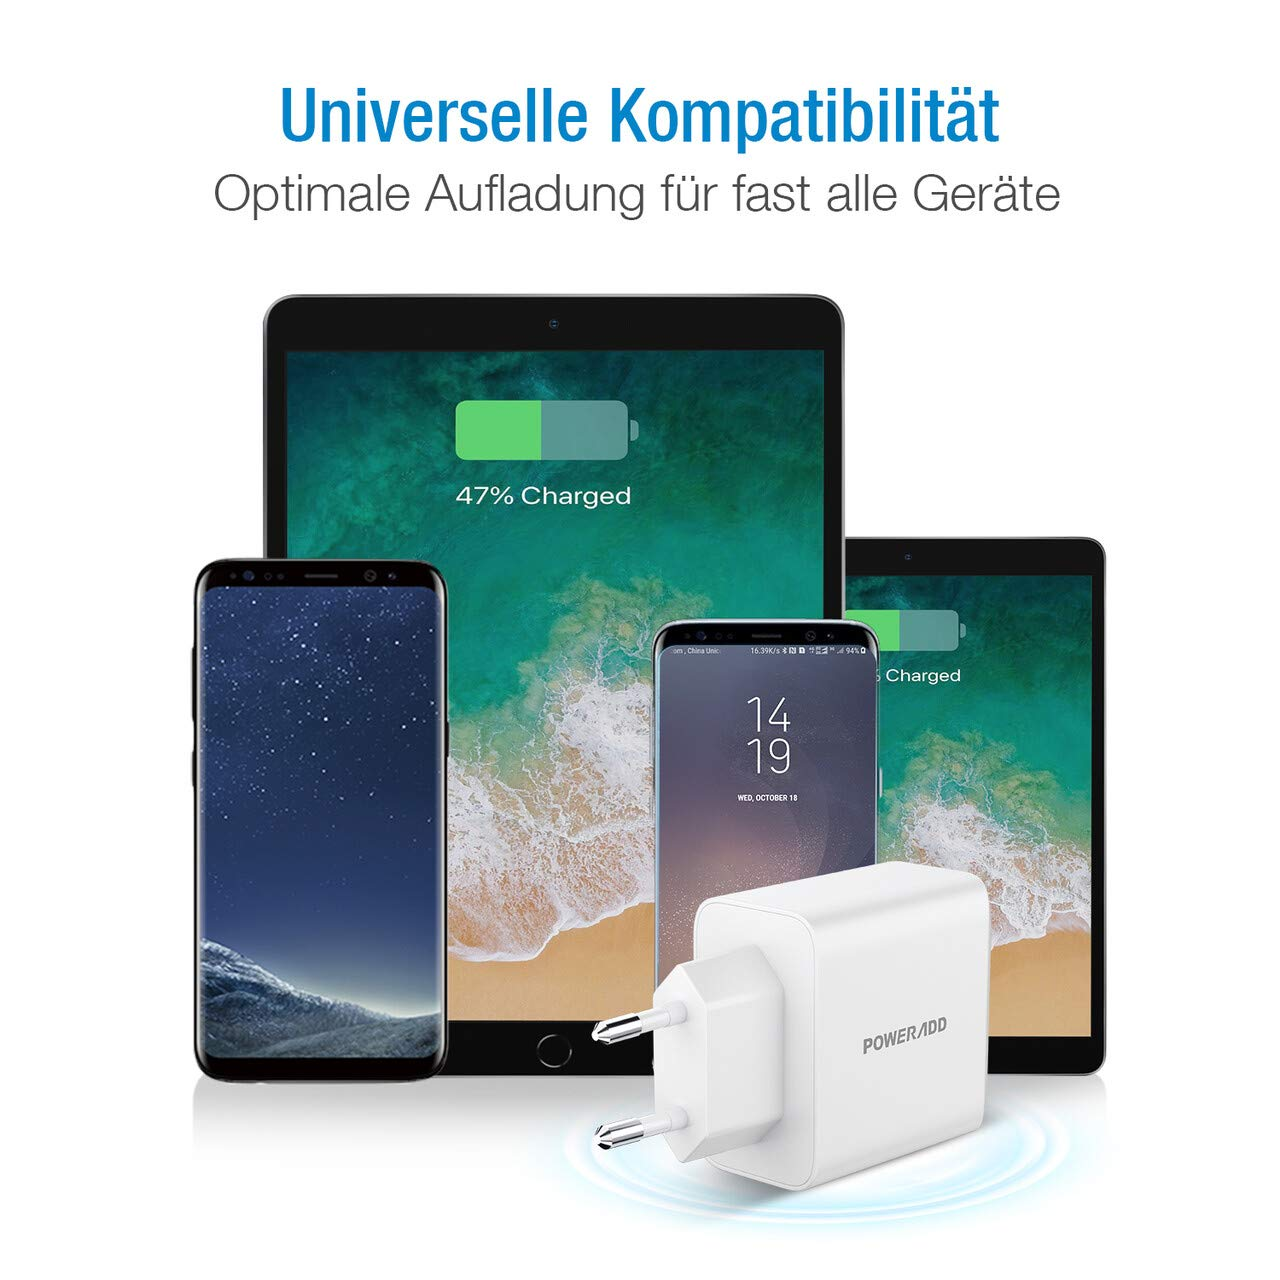 POWERADD 24W USB Ladegerät 2 Ports USB Charger Netzteil Ladeadapter 2.4A pro Port mit SmartID-Technologie für Apple, Wuawei, Samsung, Xiaomi, TCL, LG, Powerbank, MP3 usw.